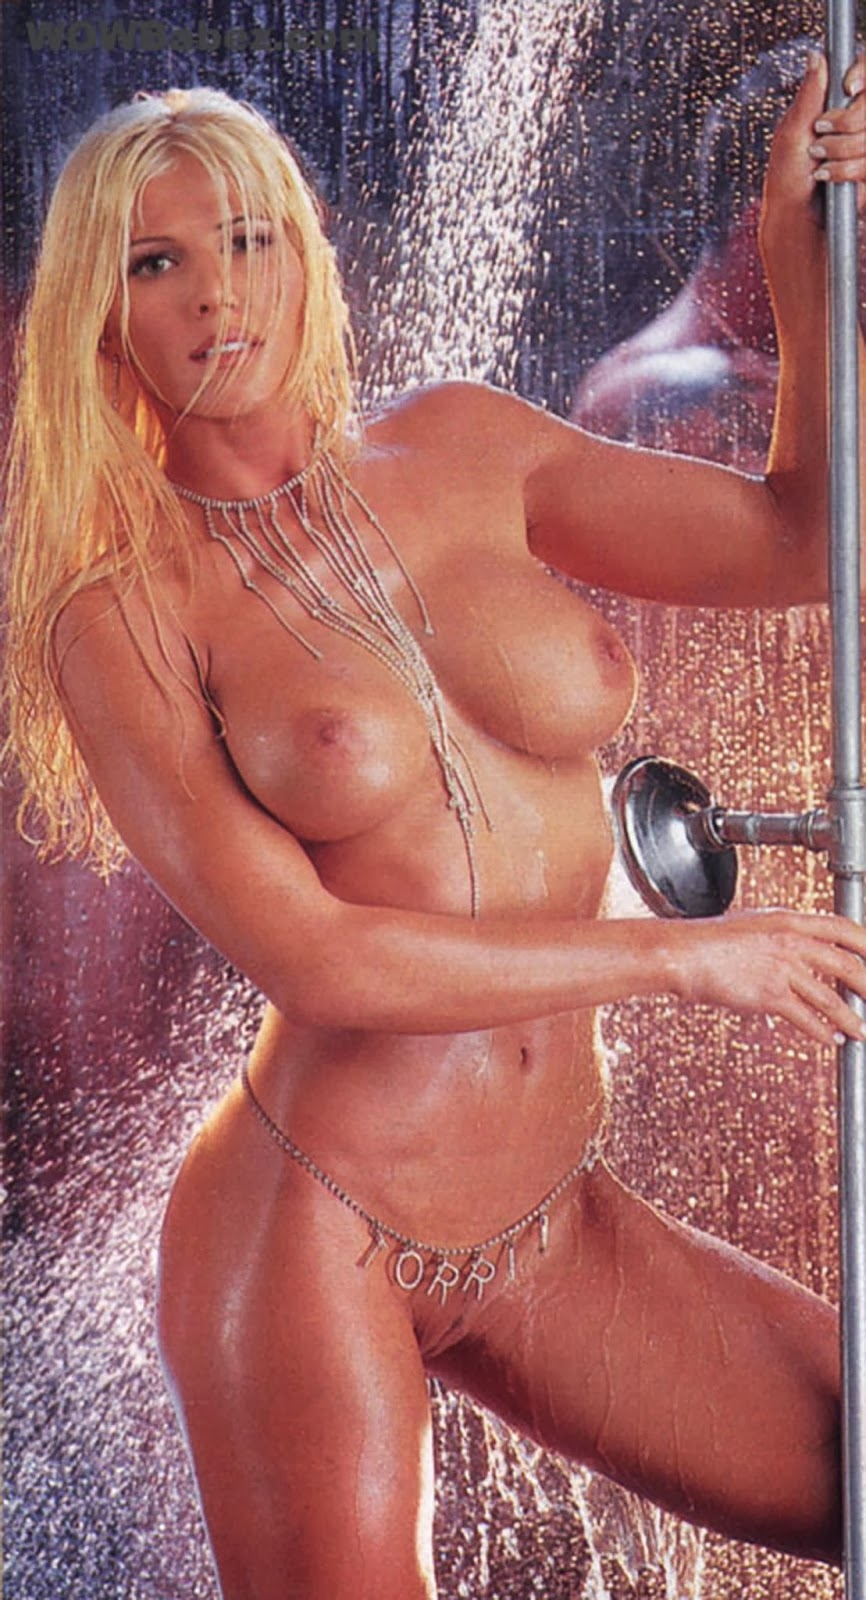 from Giancarlo torrie wilson nude videos